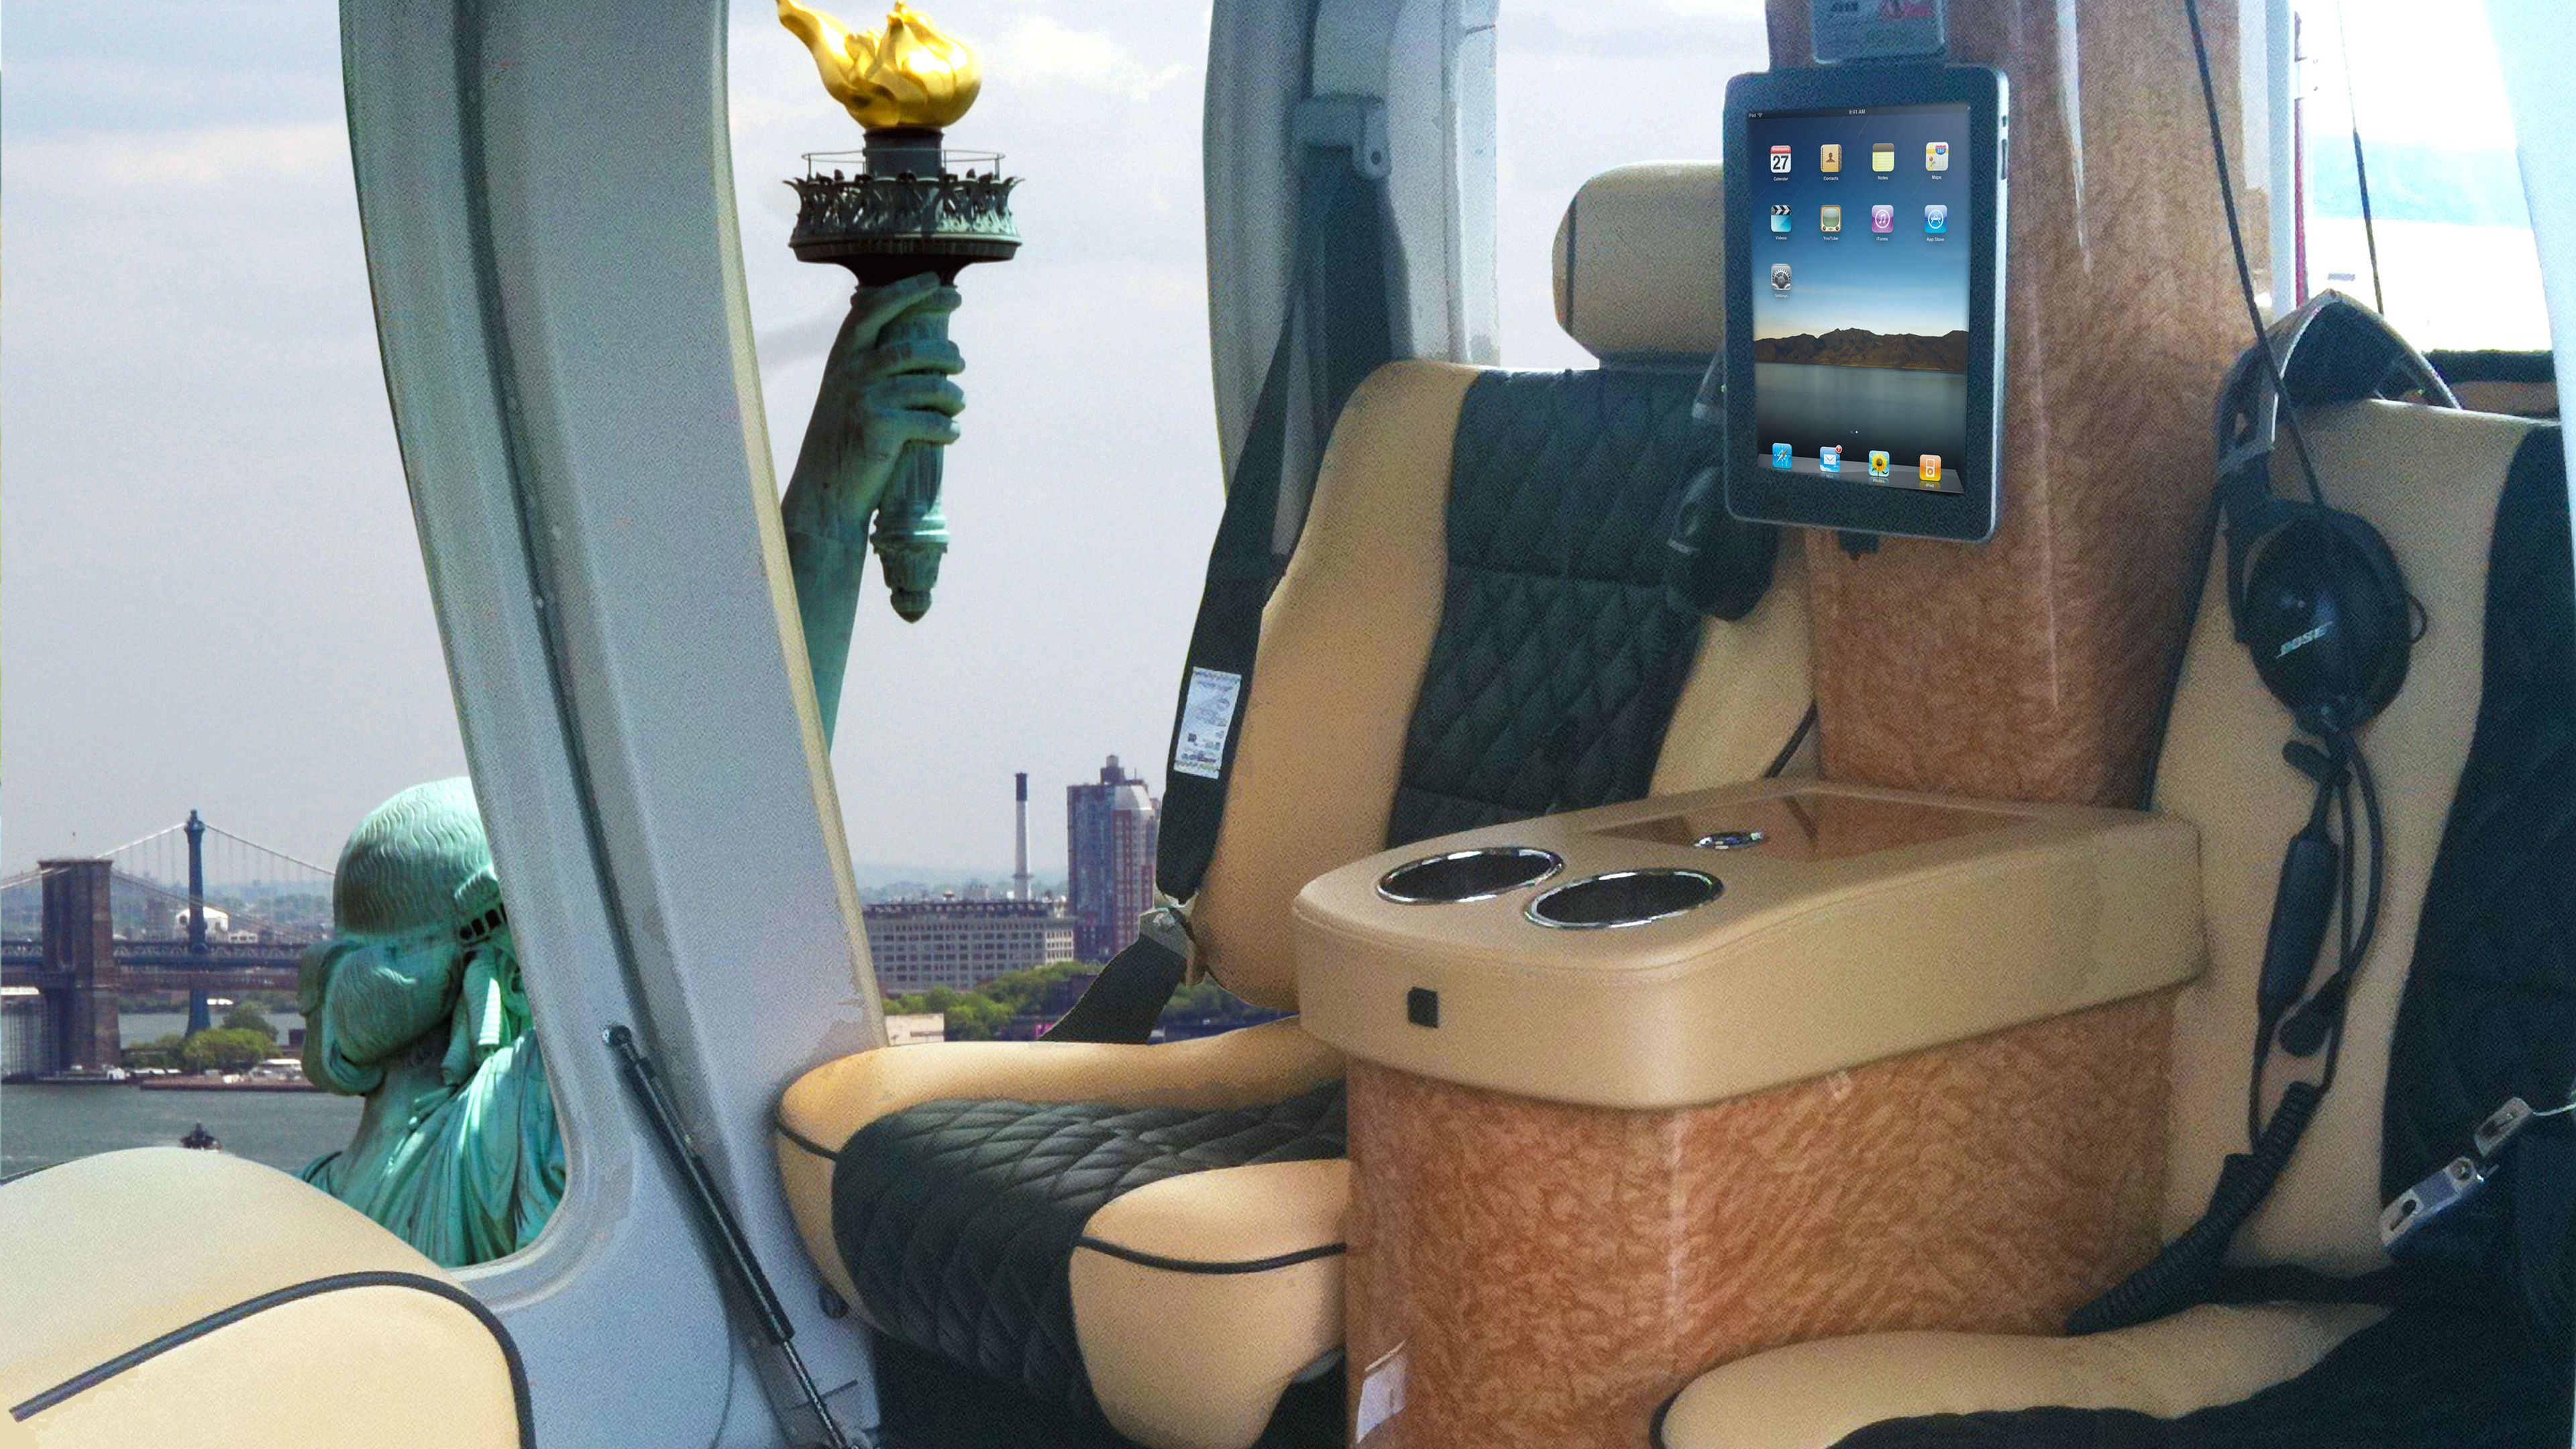 Interior view of helicopter with Statue of Liberty seen by window.